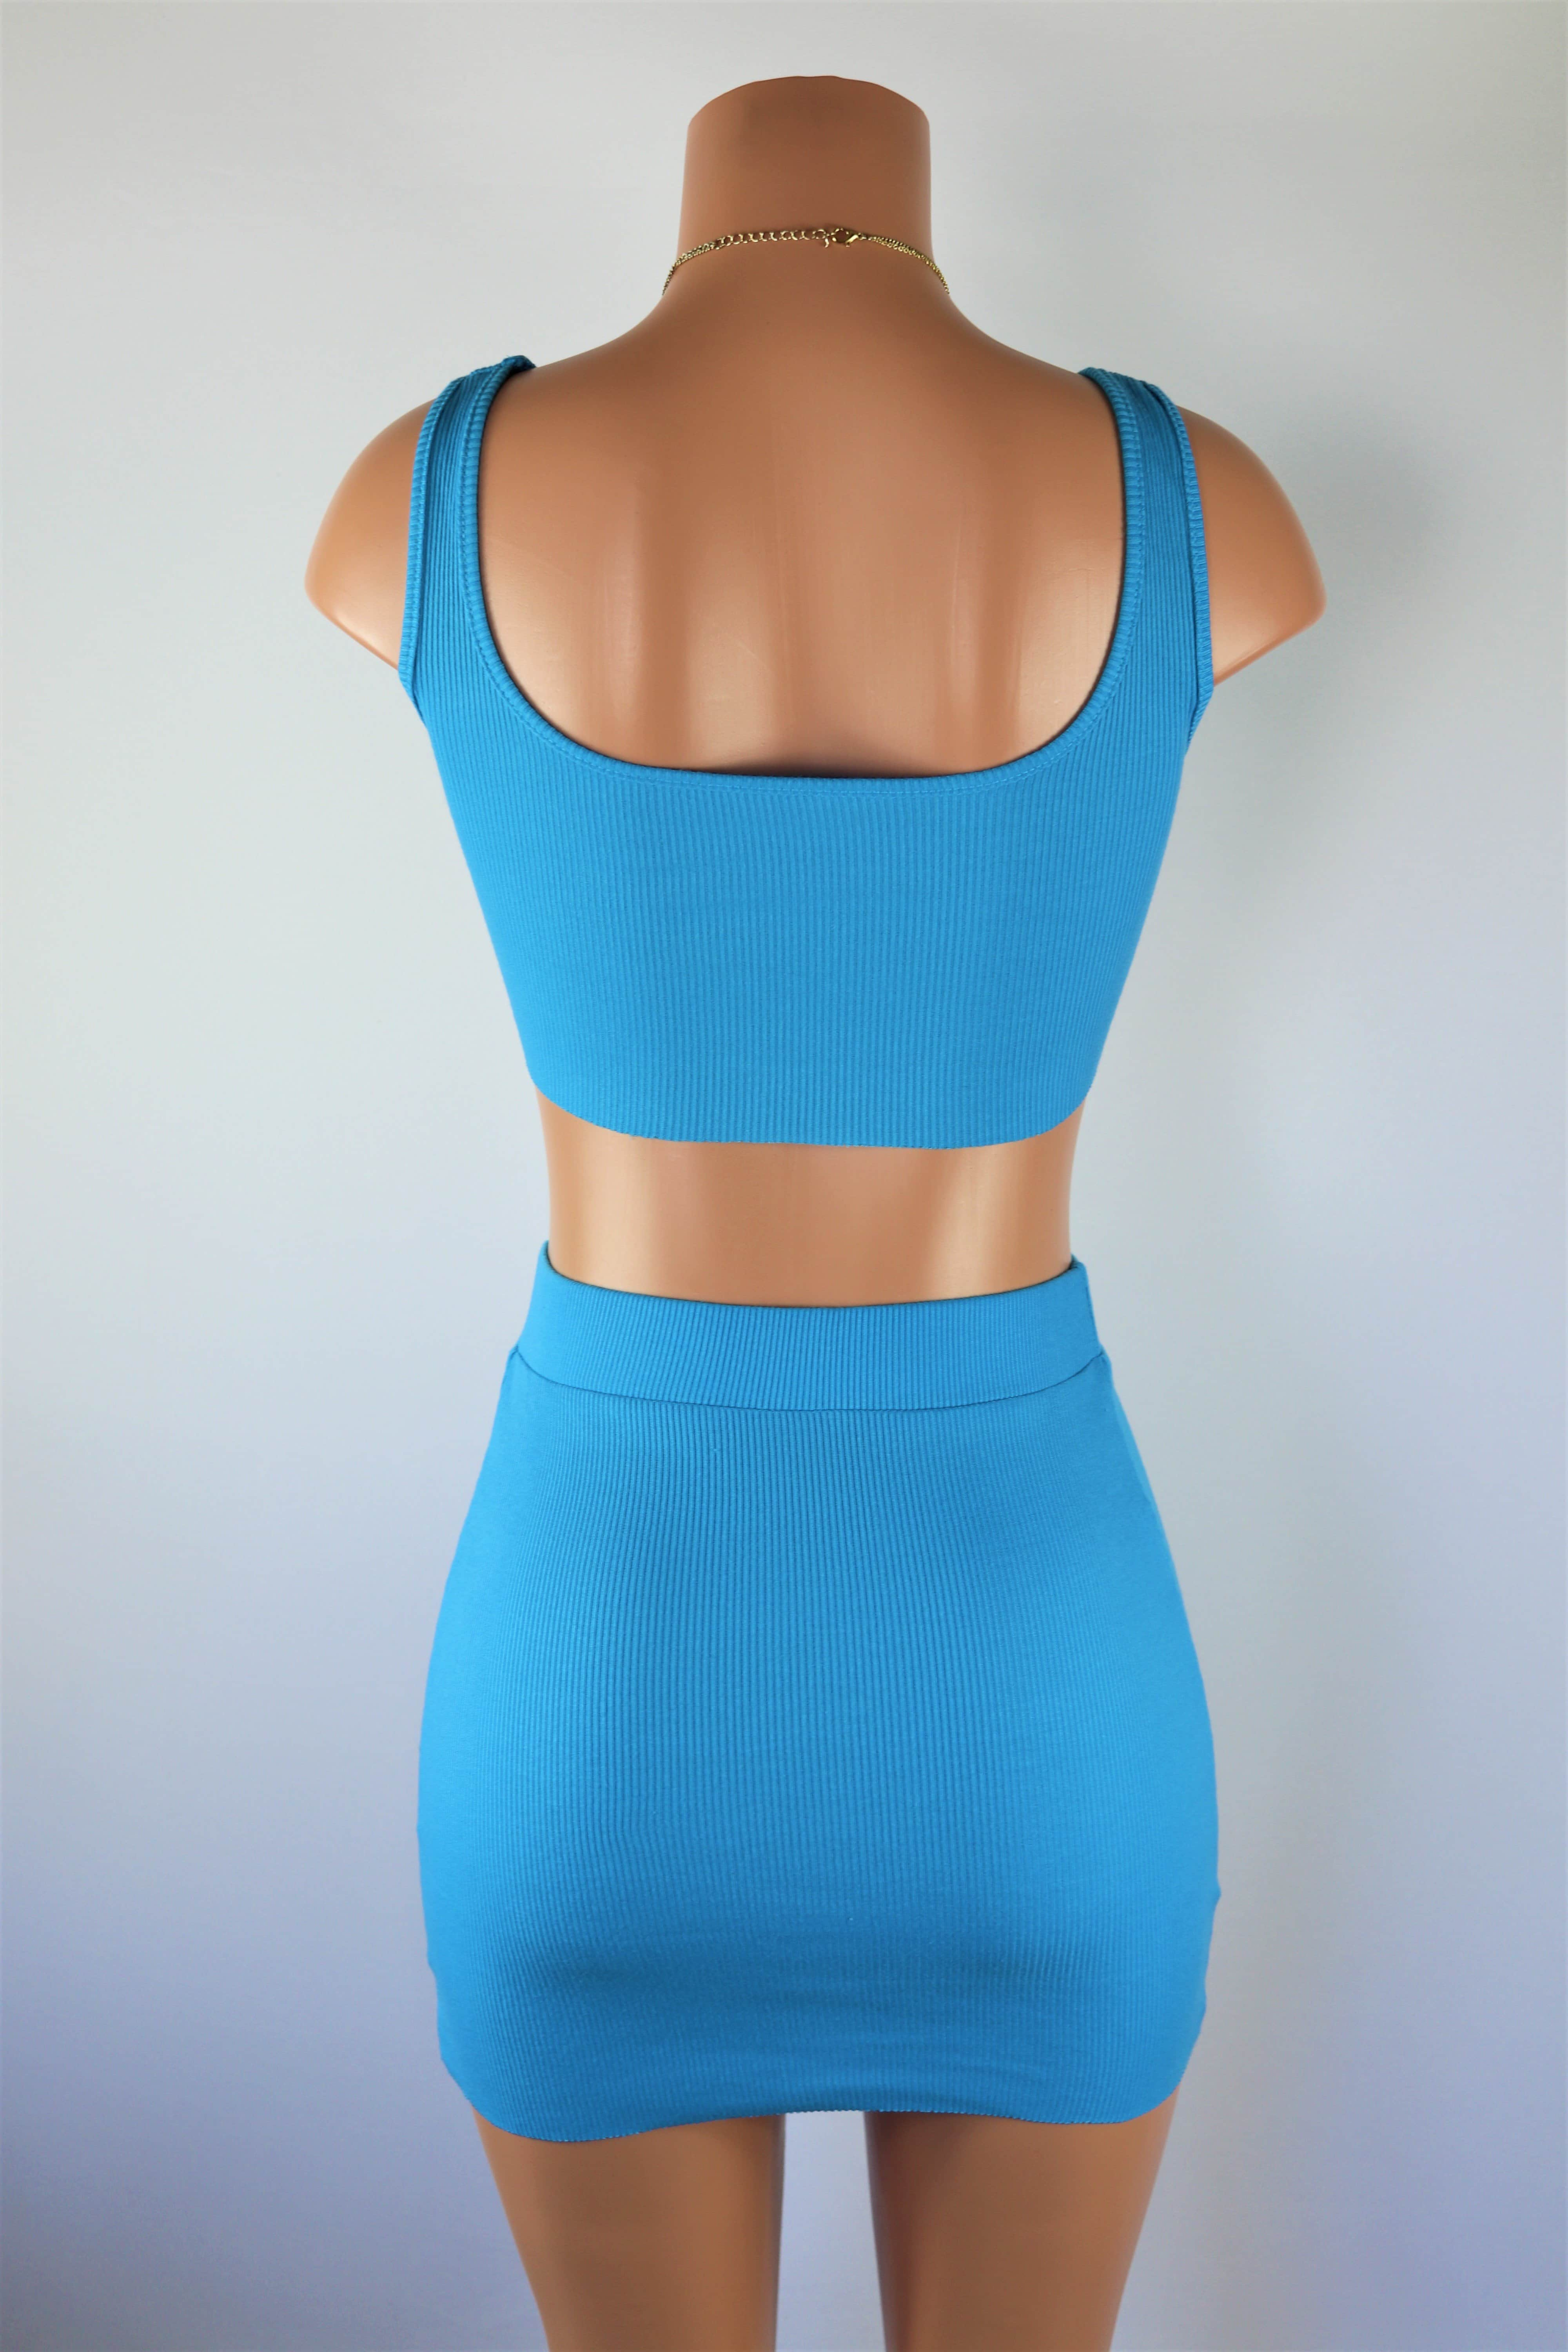 Sky Blue Set - Blue ribbed crop top and high waisted skirt